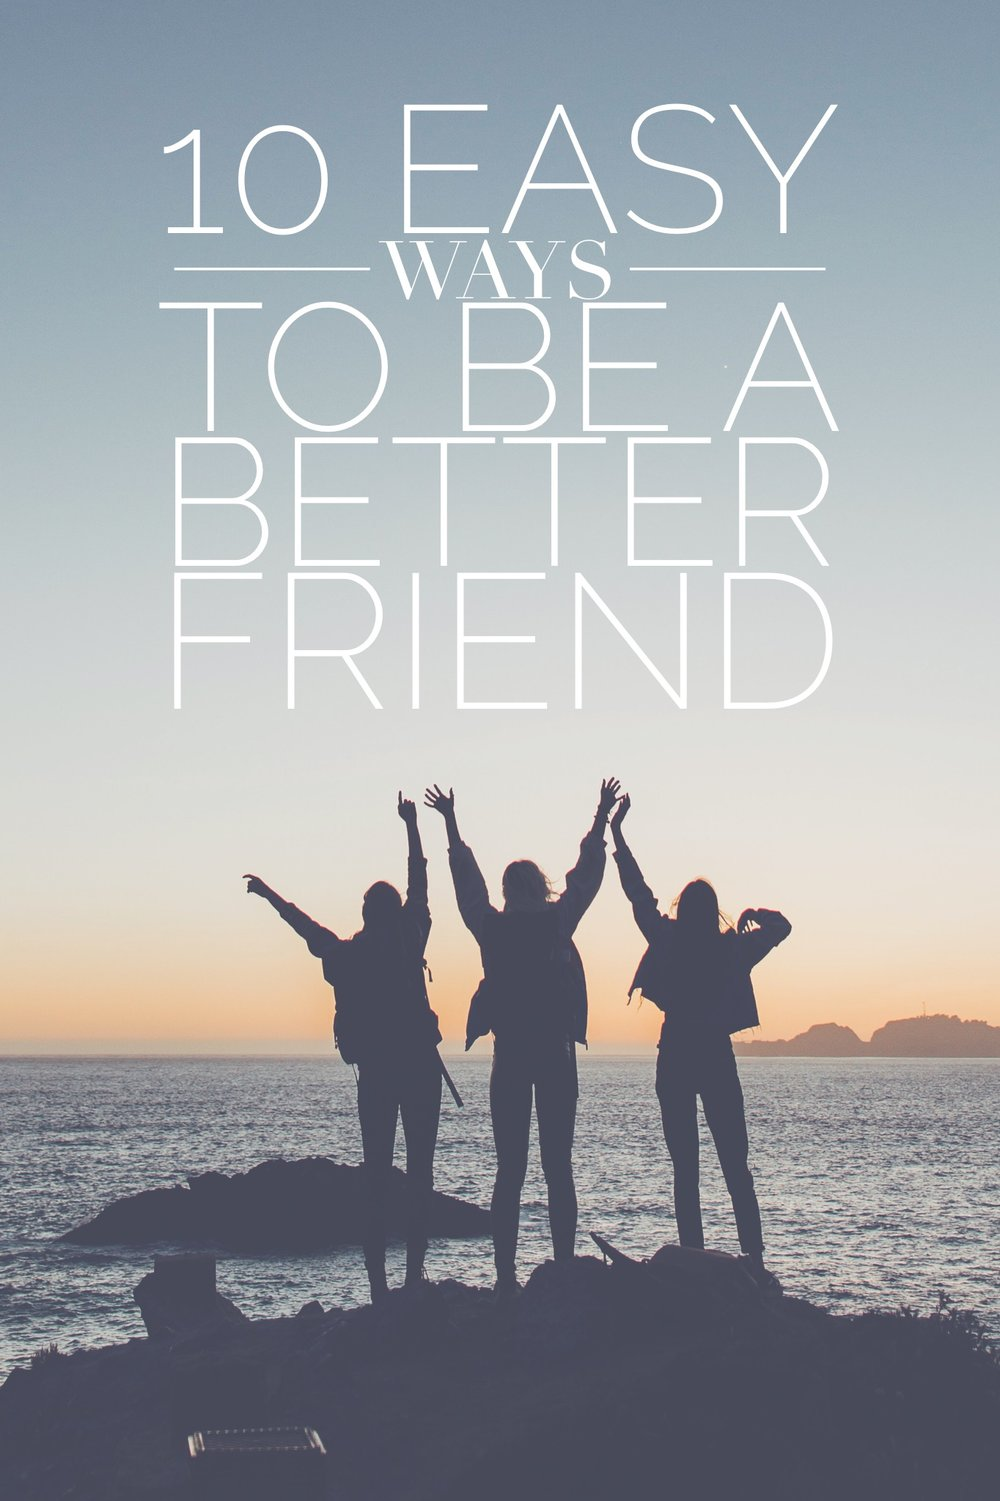 10 Easy Ways to Be a Better Friend. We all love to have friends who care about us and treat us well, but have you ever wondered how you can be a better friend? Improve your relationships with these tips! #friendship #relationships